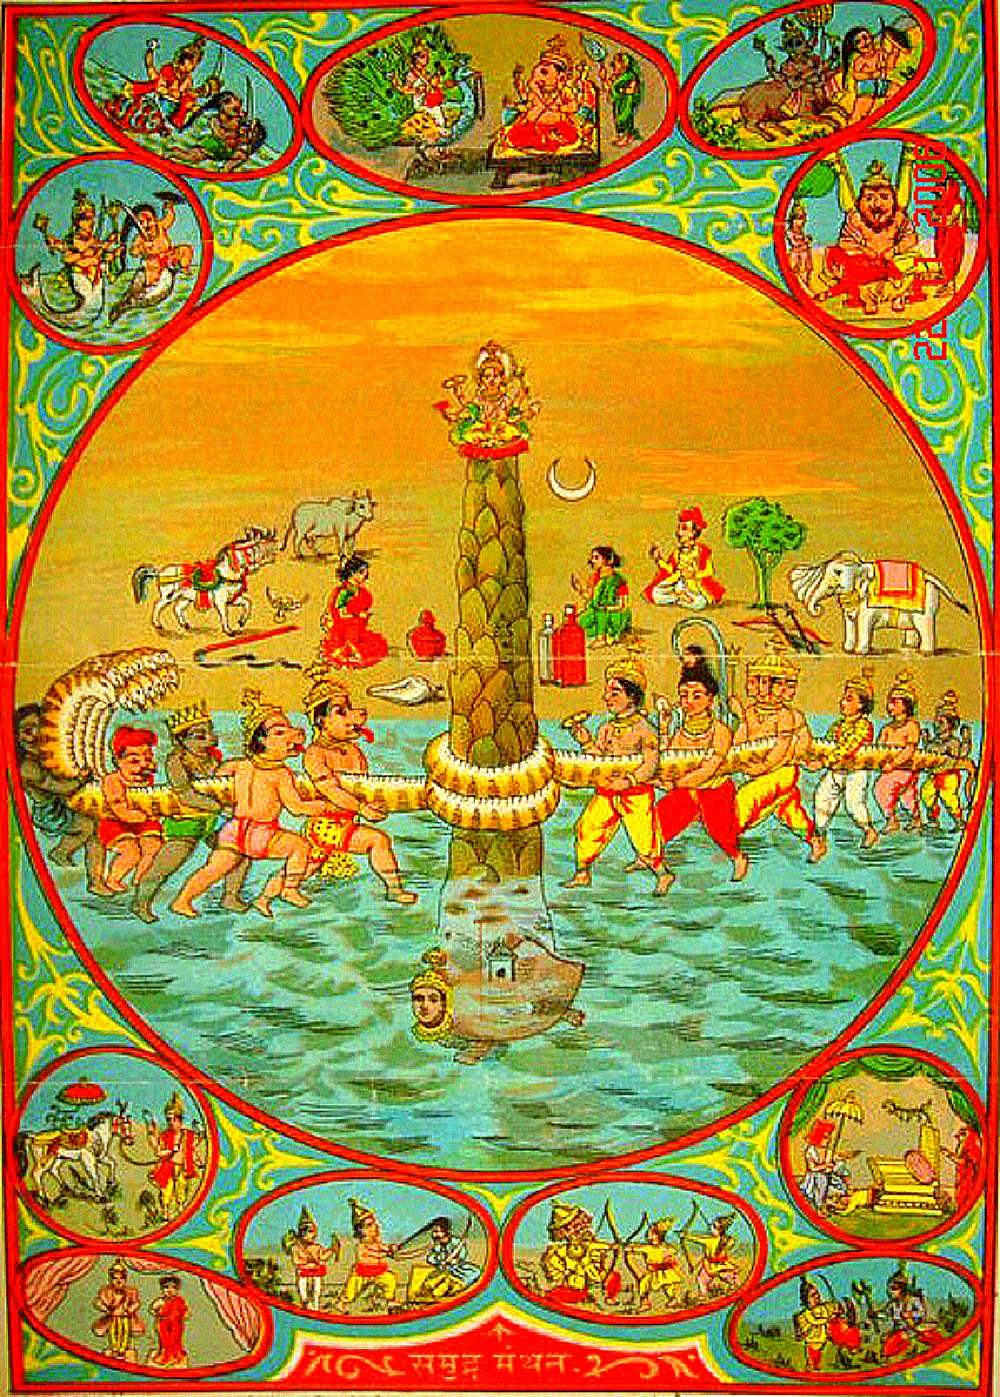 A print showing the samudra manthana (churning of the ocean). The Devas are on the right, holding Vasuki's tail, and the Asuras on the left, holding his head. Notice Lord Vishnu as the turtle Kurma in the water, holding Mount Mandara up.